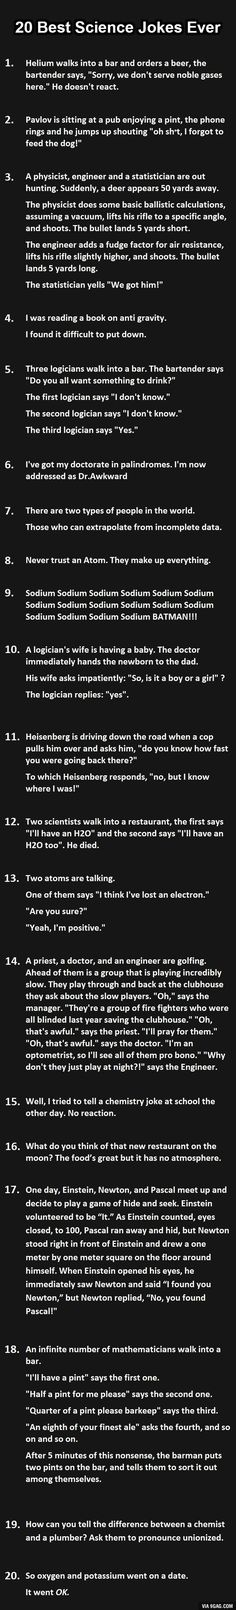 20 of the best science jokes ever.  Do you get them all?  Always awkward to be snickering at a joke and suddenly realize no one else got the punchline...